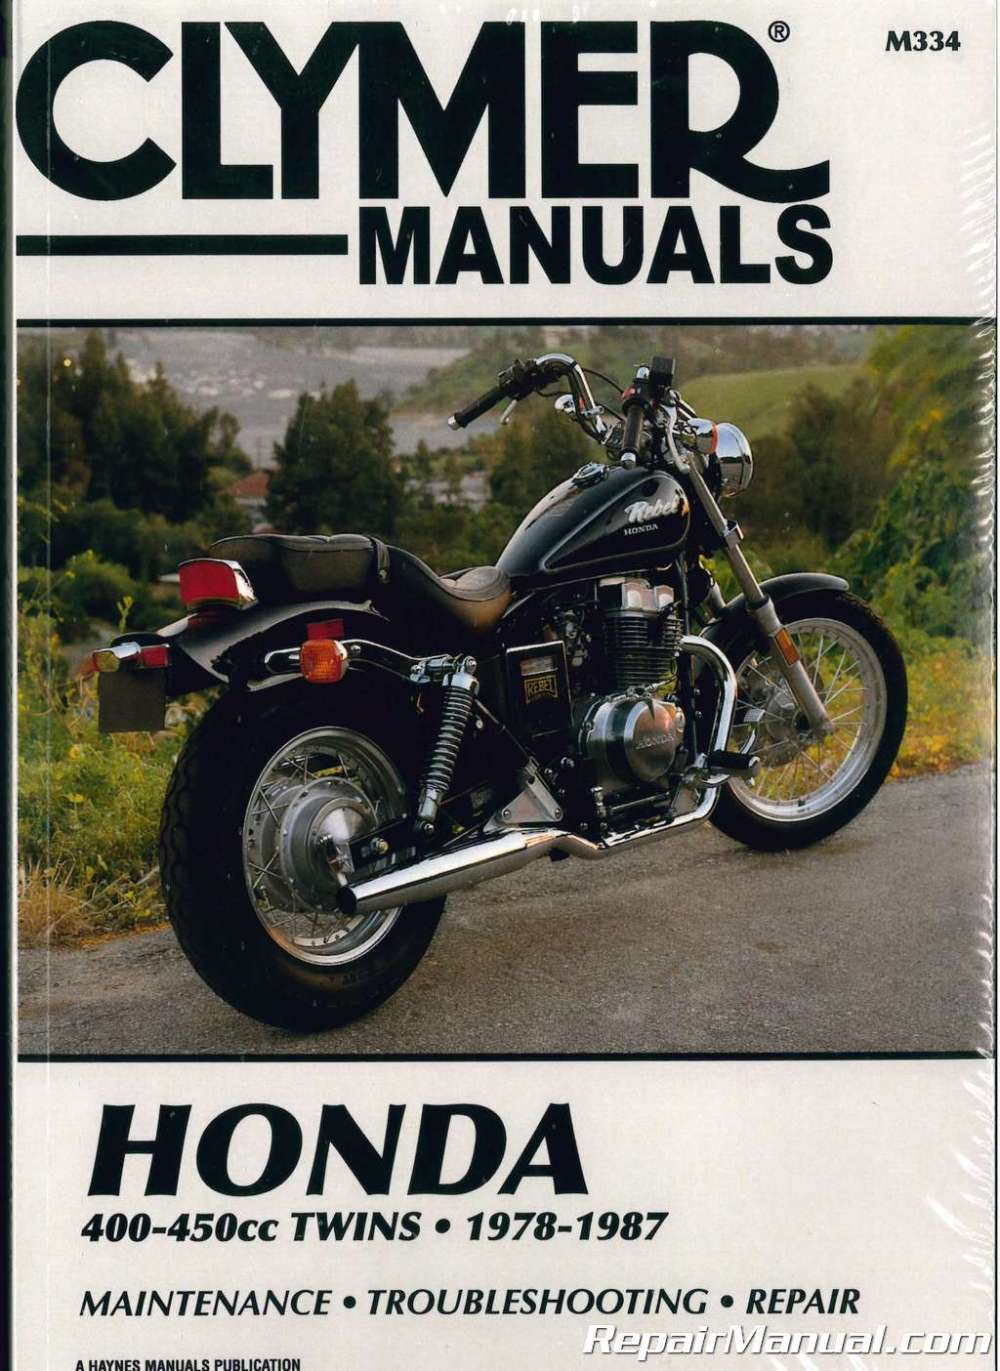 medium resolution of 1978 1987 honda cb400 cm400 cb450 cm450 cbx450 motorcycle clymer repair manual